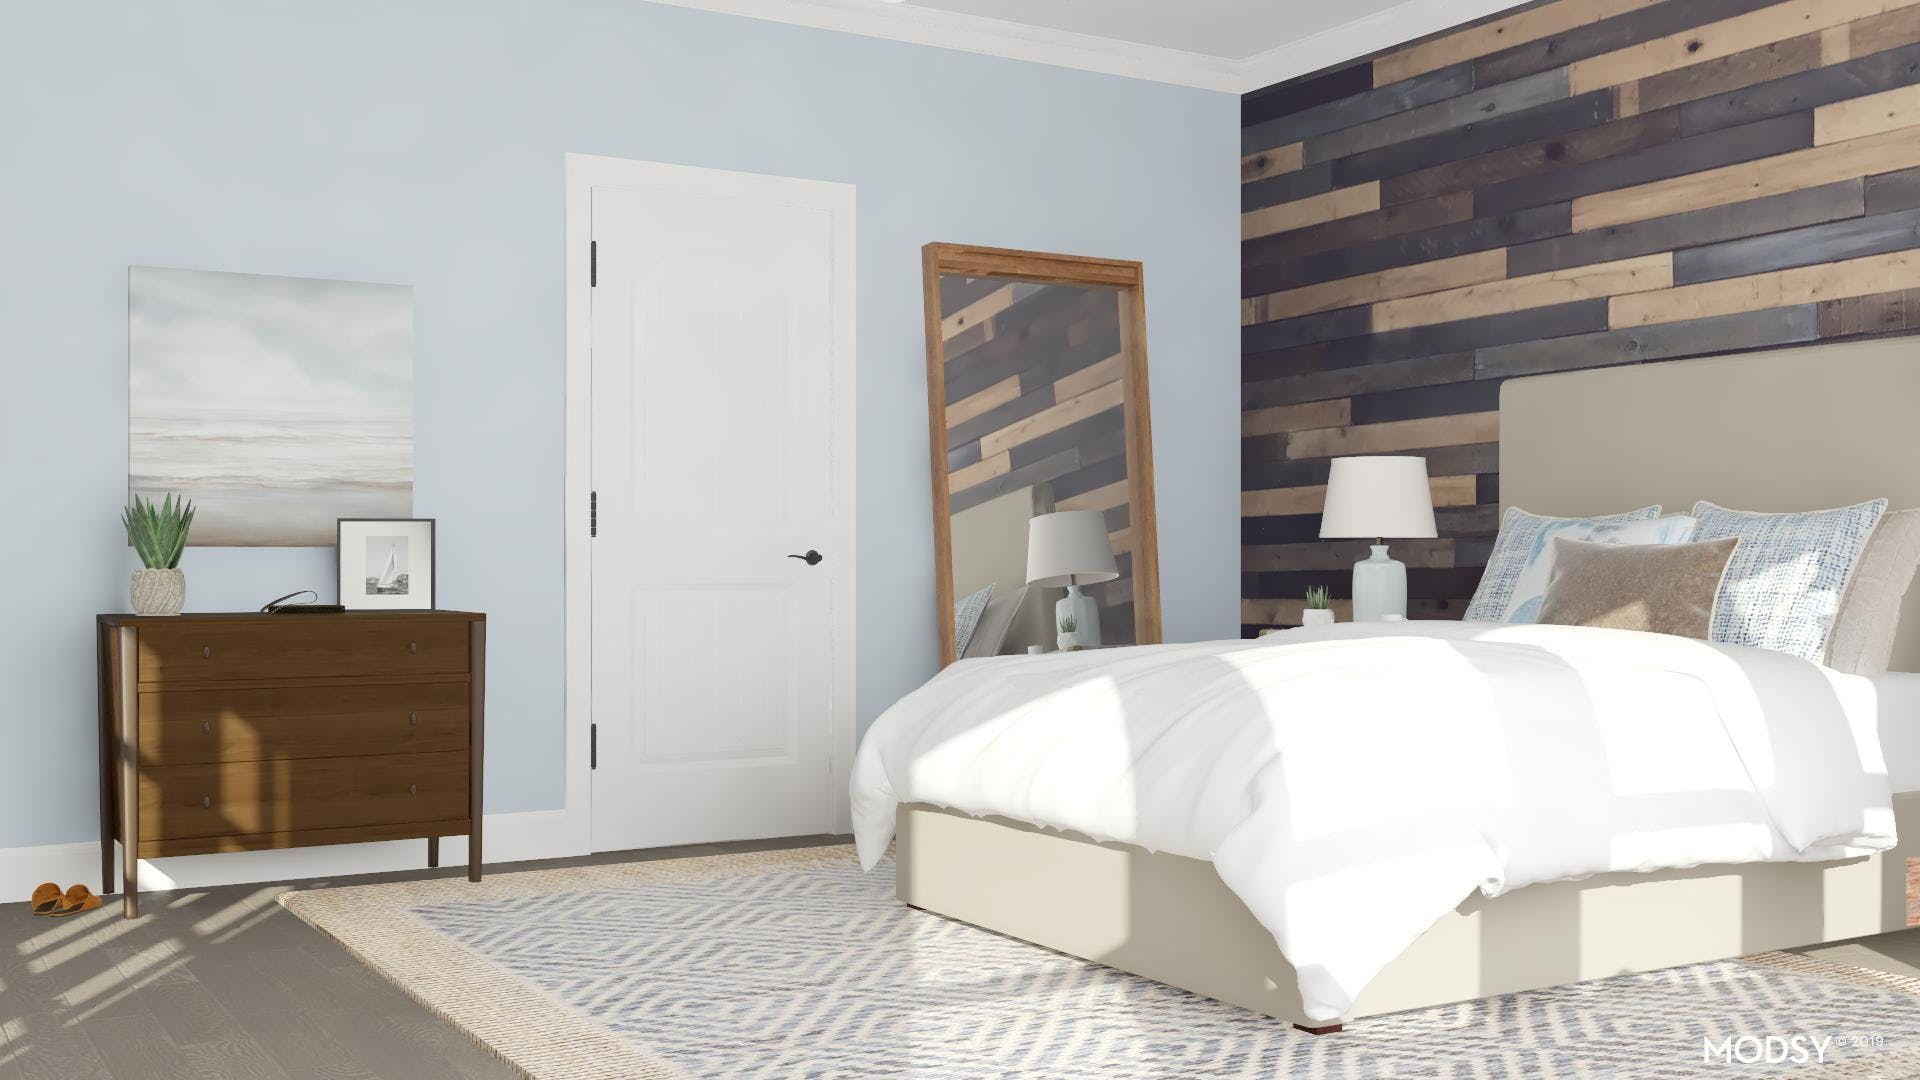 A Cozy Bedroom With Rustic Texture